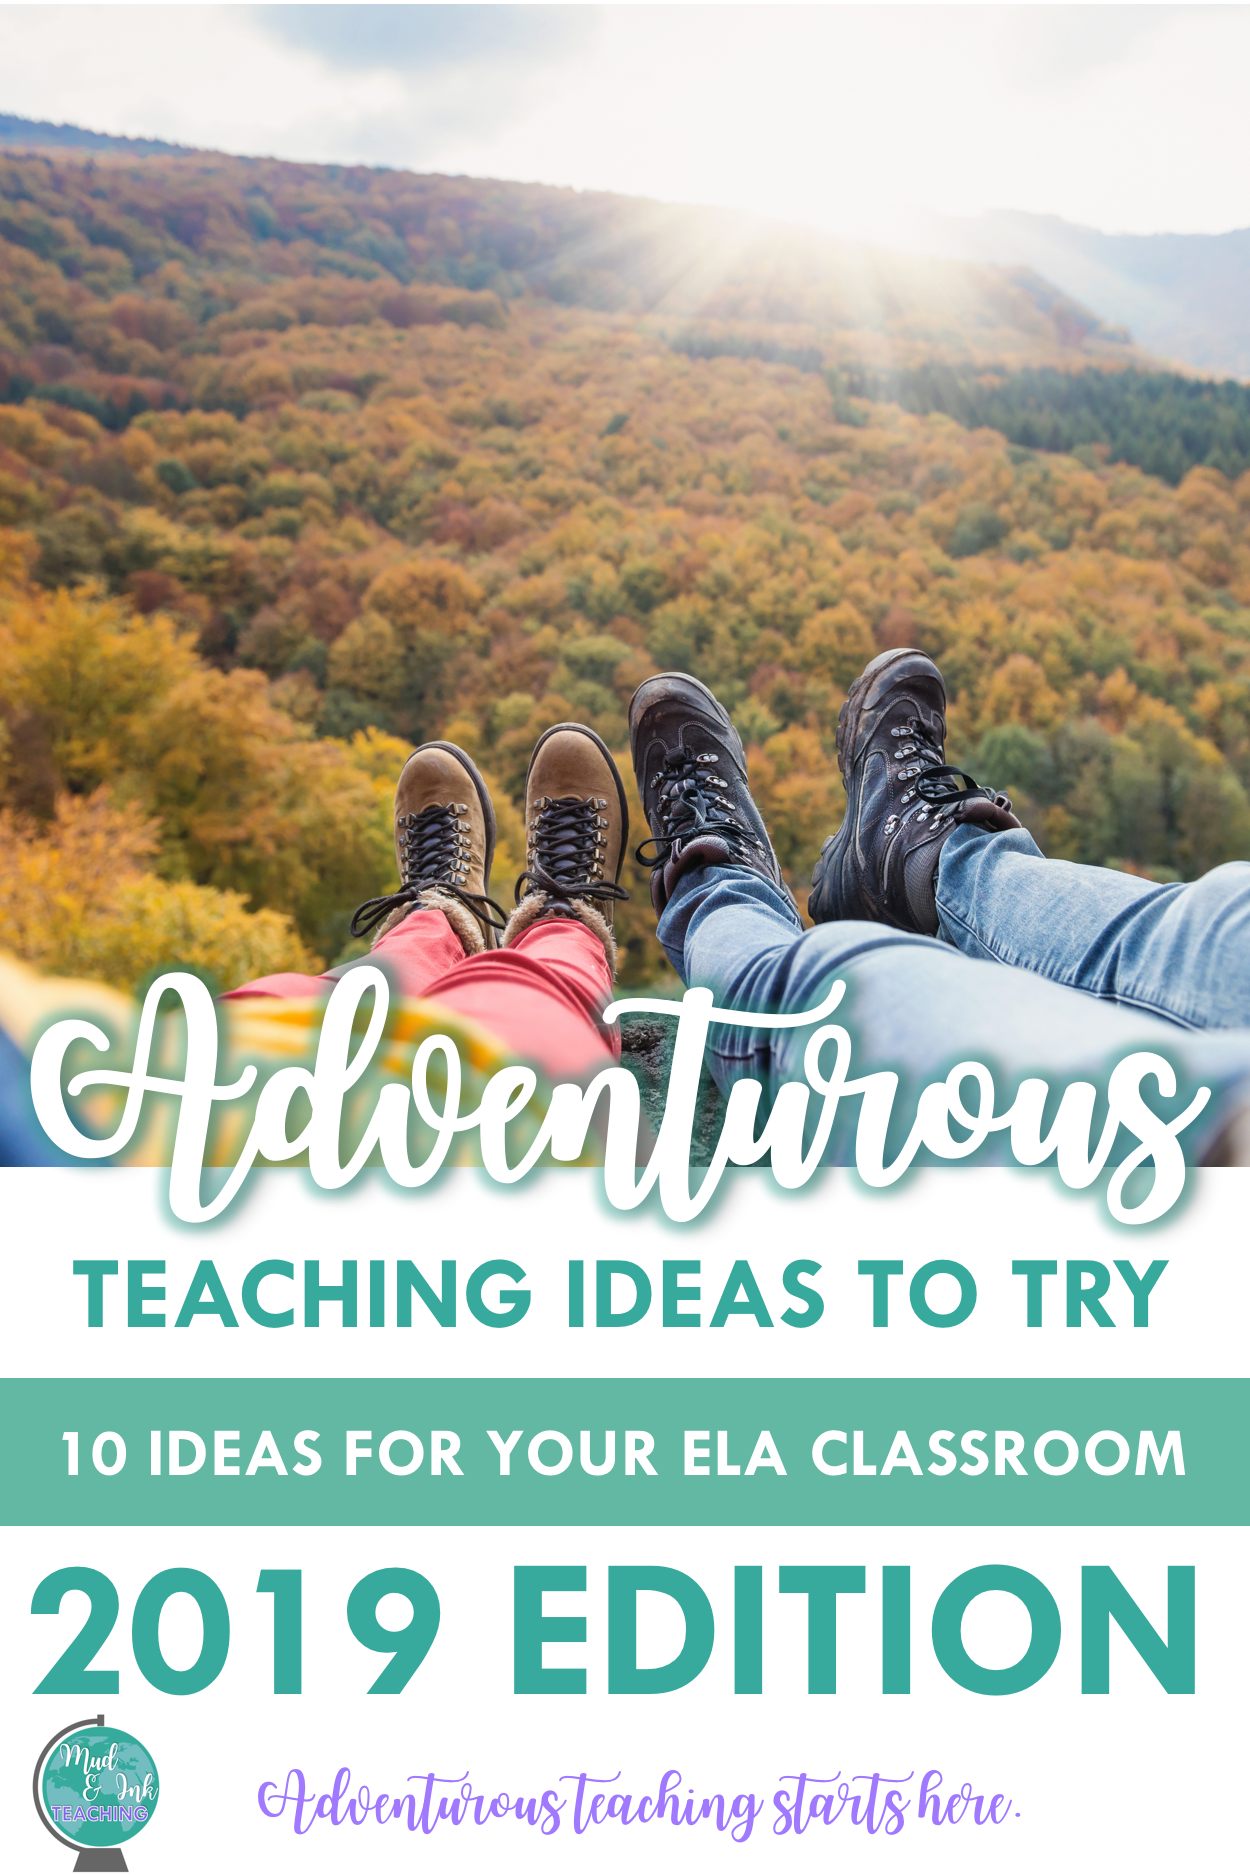 Here are 10 Adventurous Teaching Ideas for 2019.